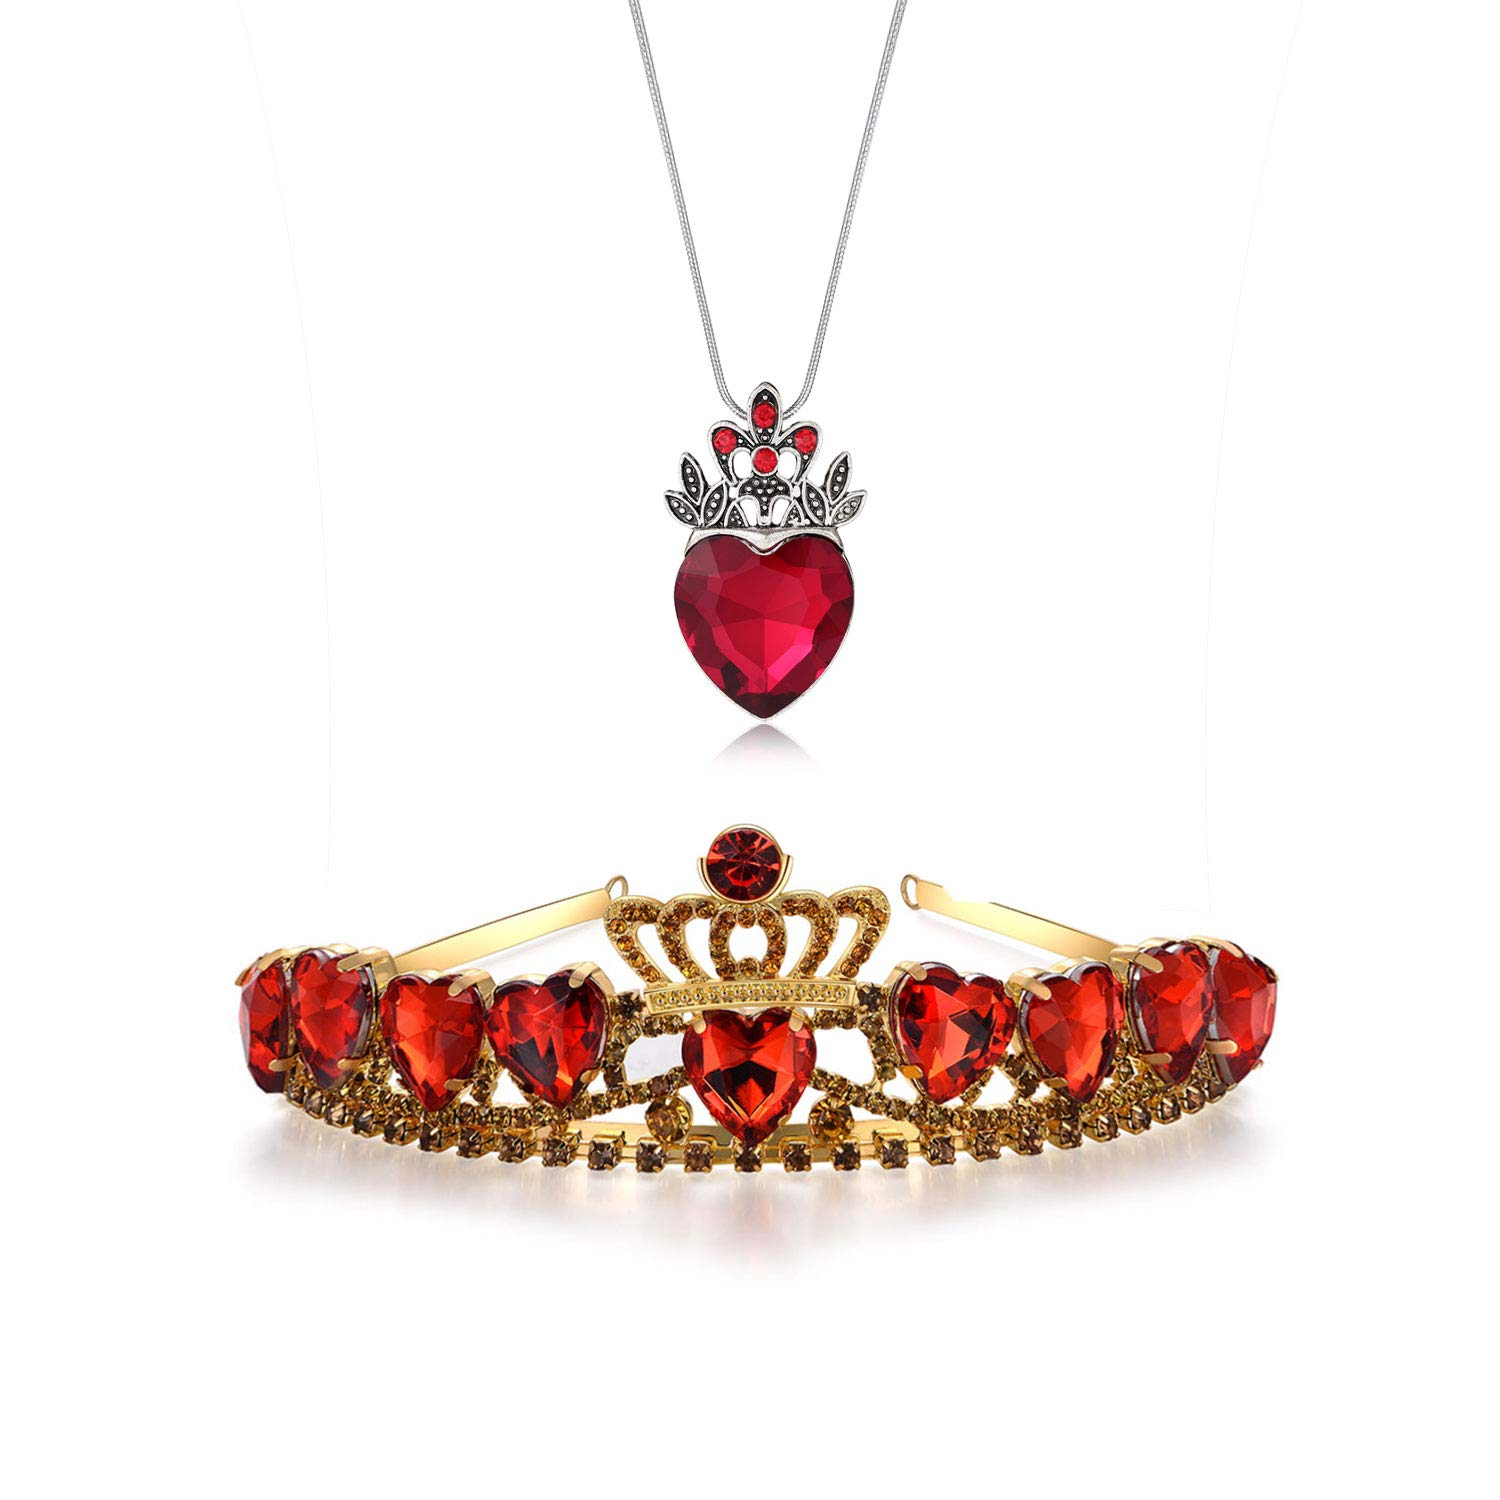 Evie Red Heart Tiara and Necklace Descendants Red Heart Crown Jewelry Set Queen of Hearts Costume Fan Jewelry Pre Teen Gift for Her by FUNLMO